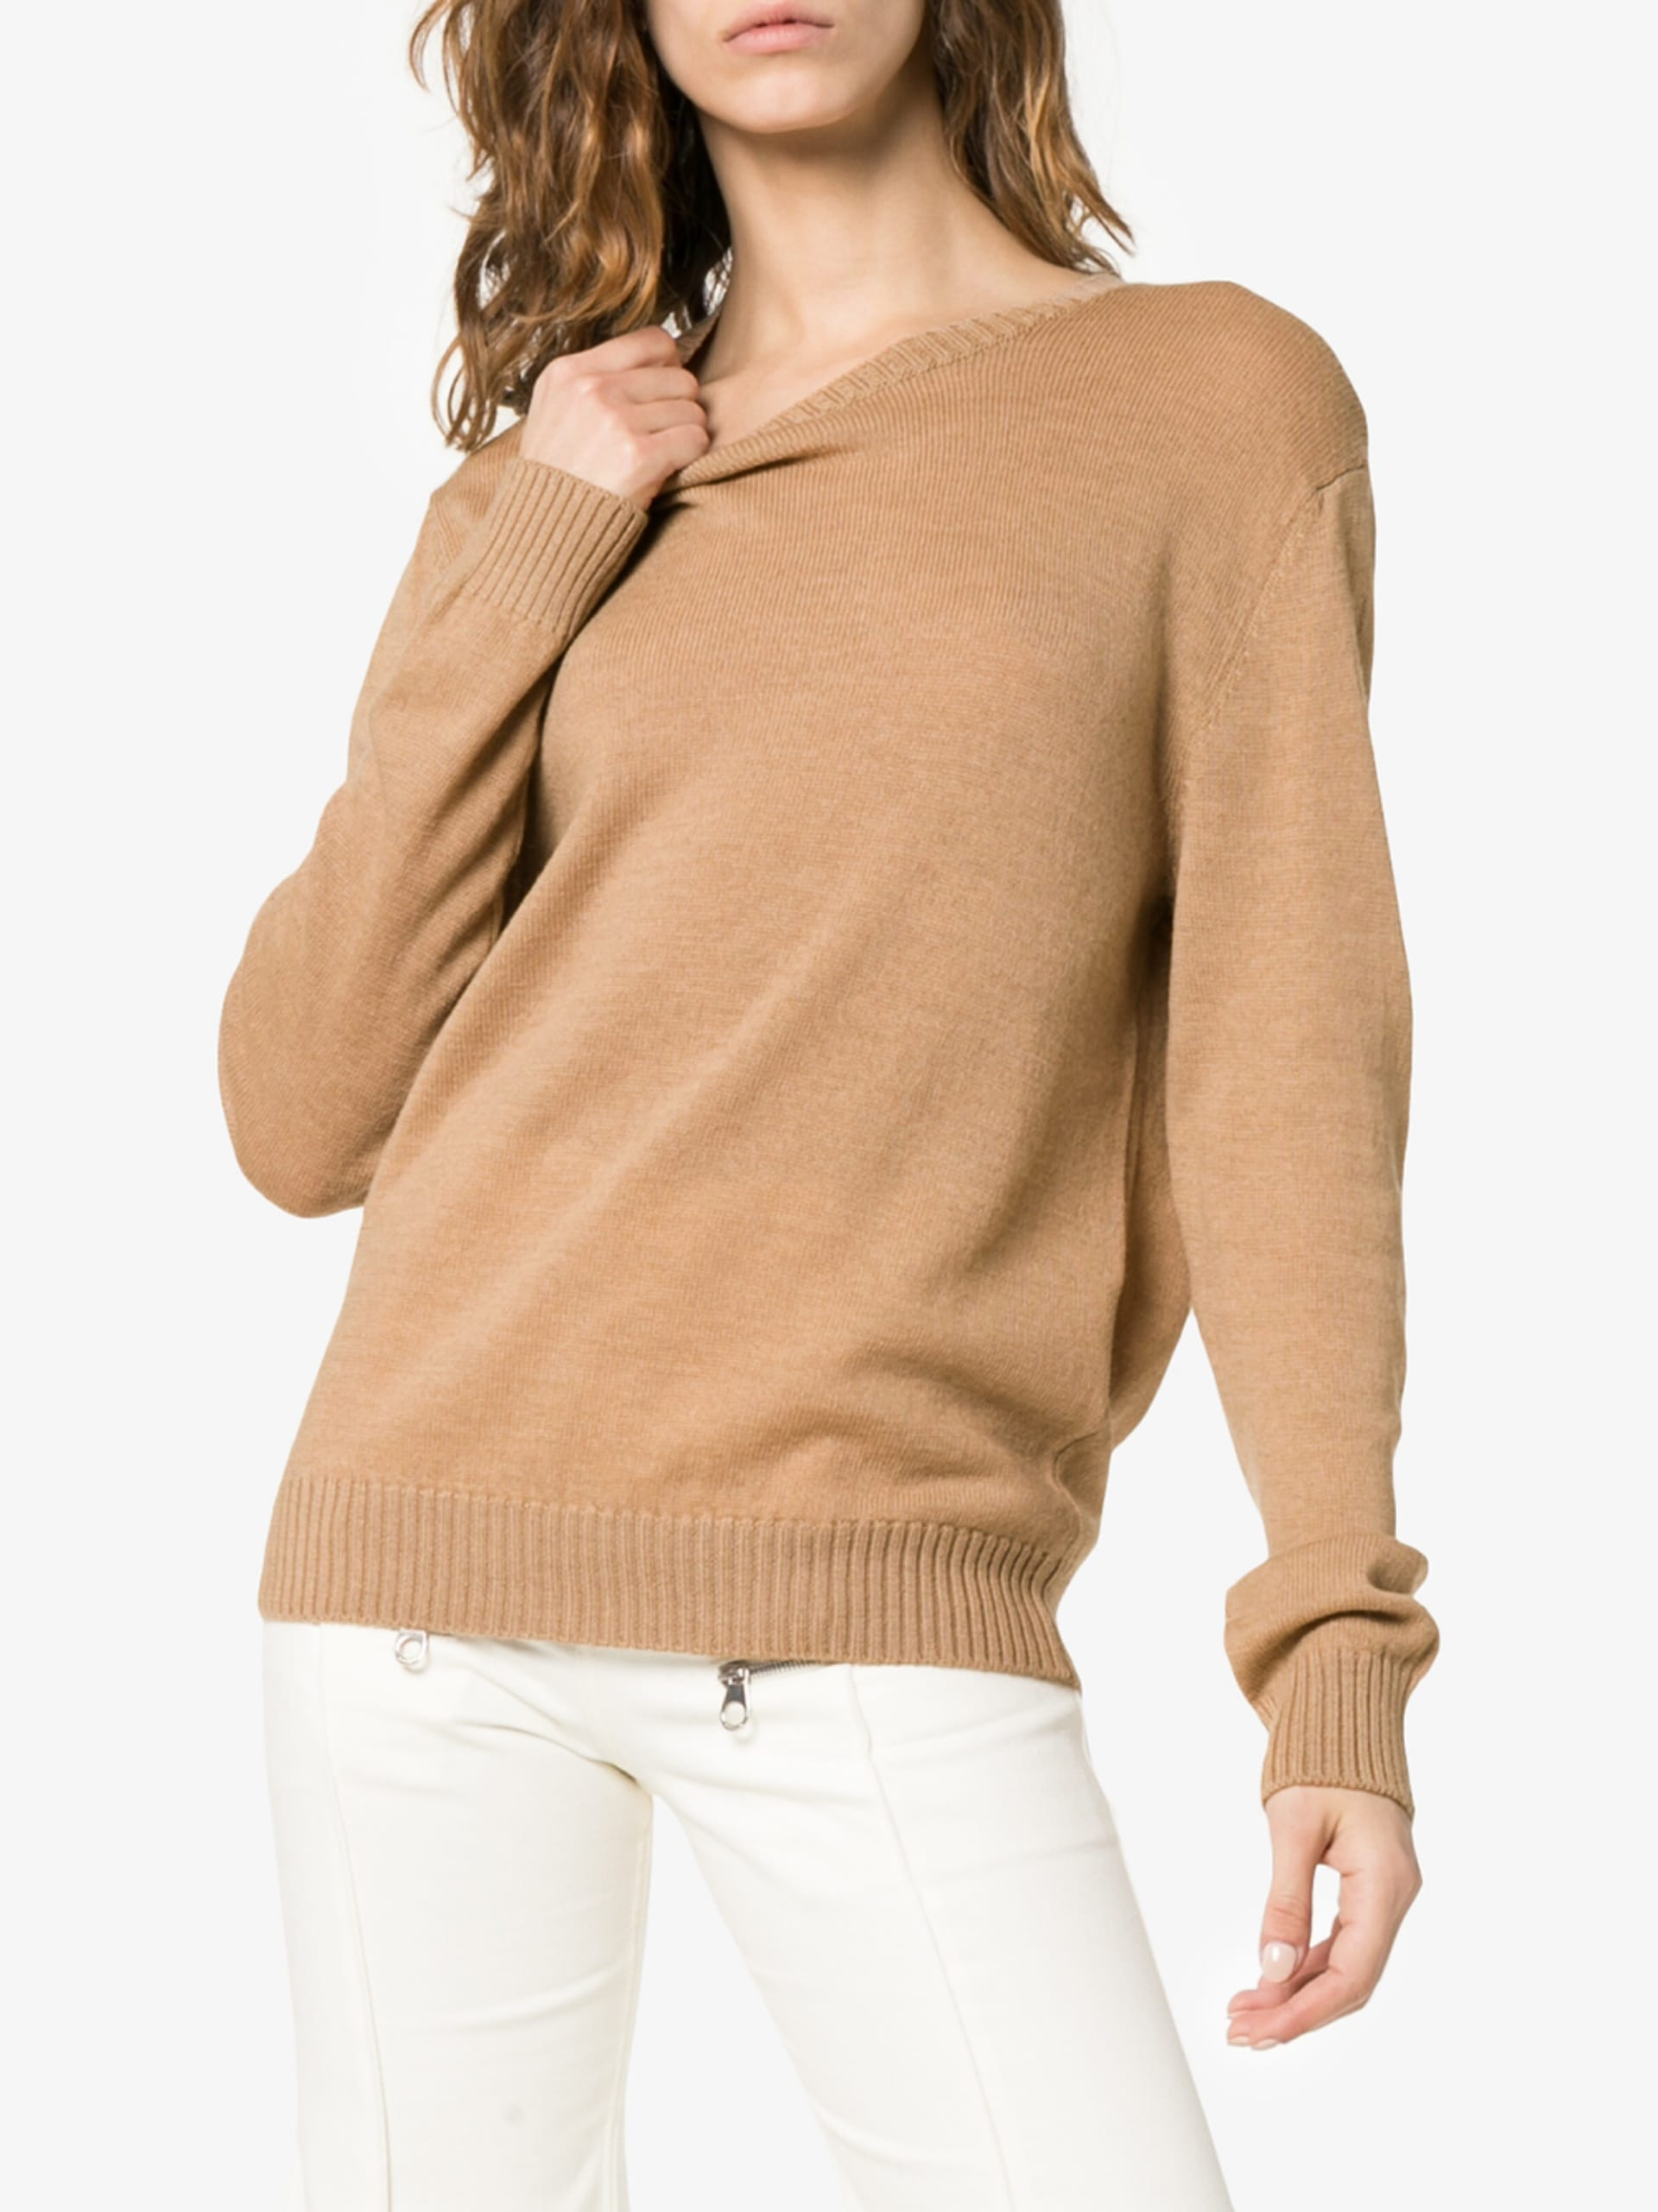 jil-sander-crew-neck-sweater_13353551_15962895_1920